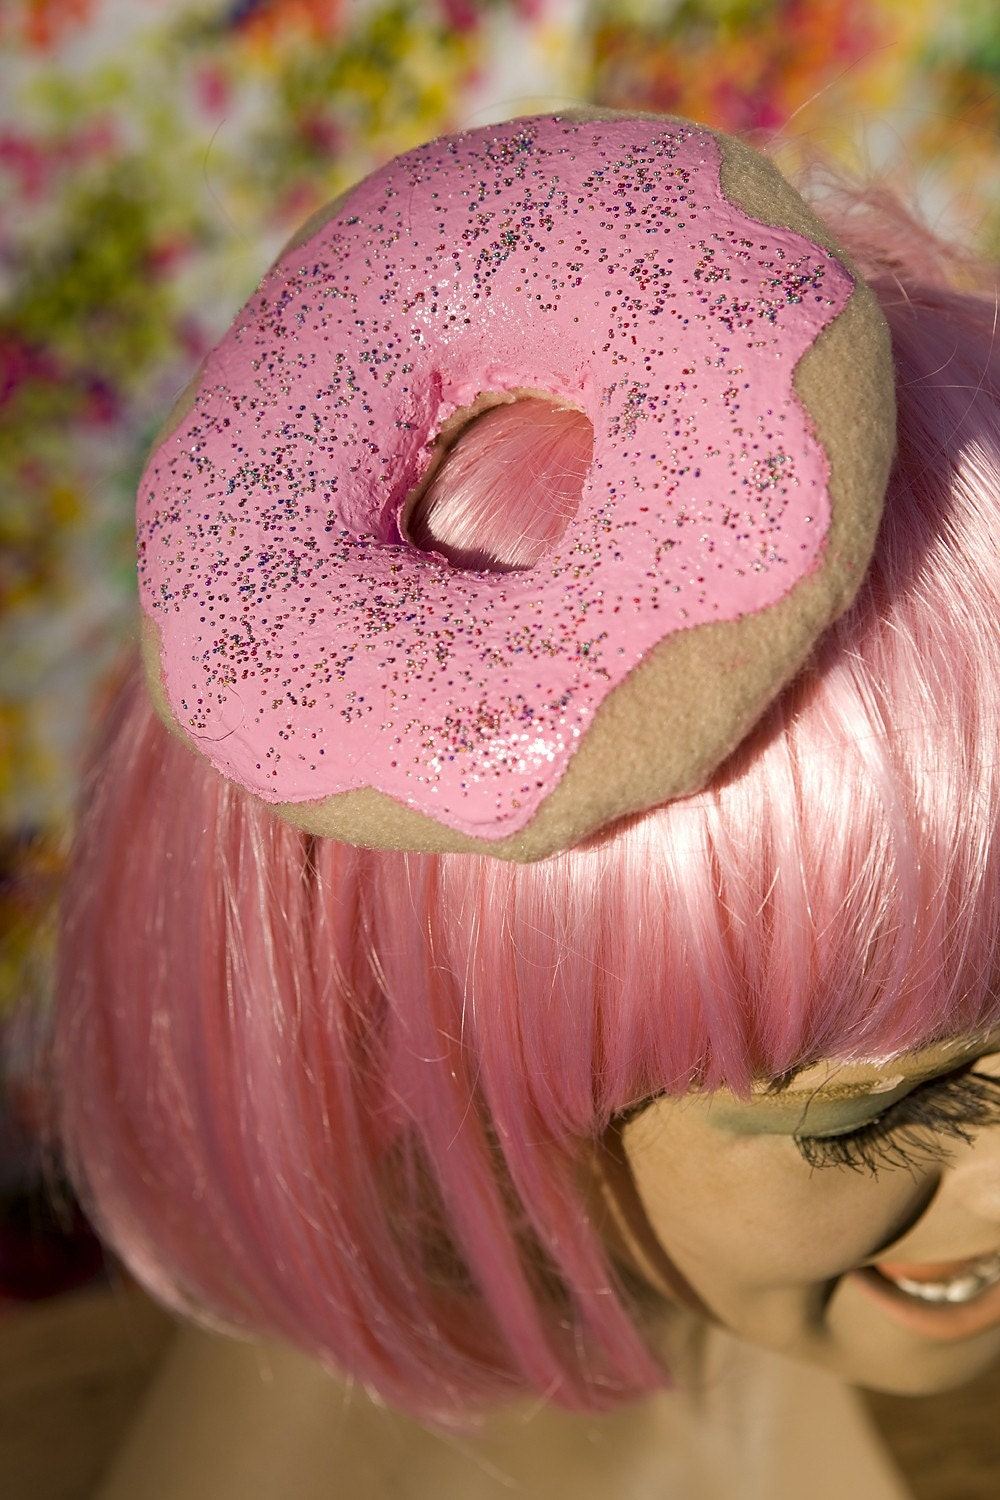 pink donut hat with sprinkles